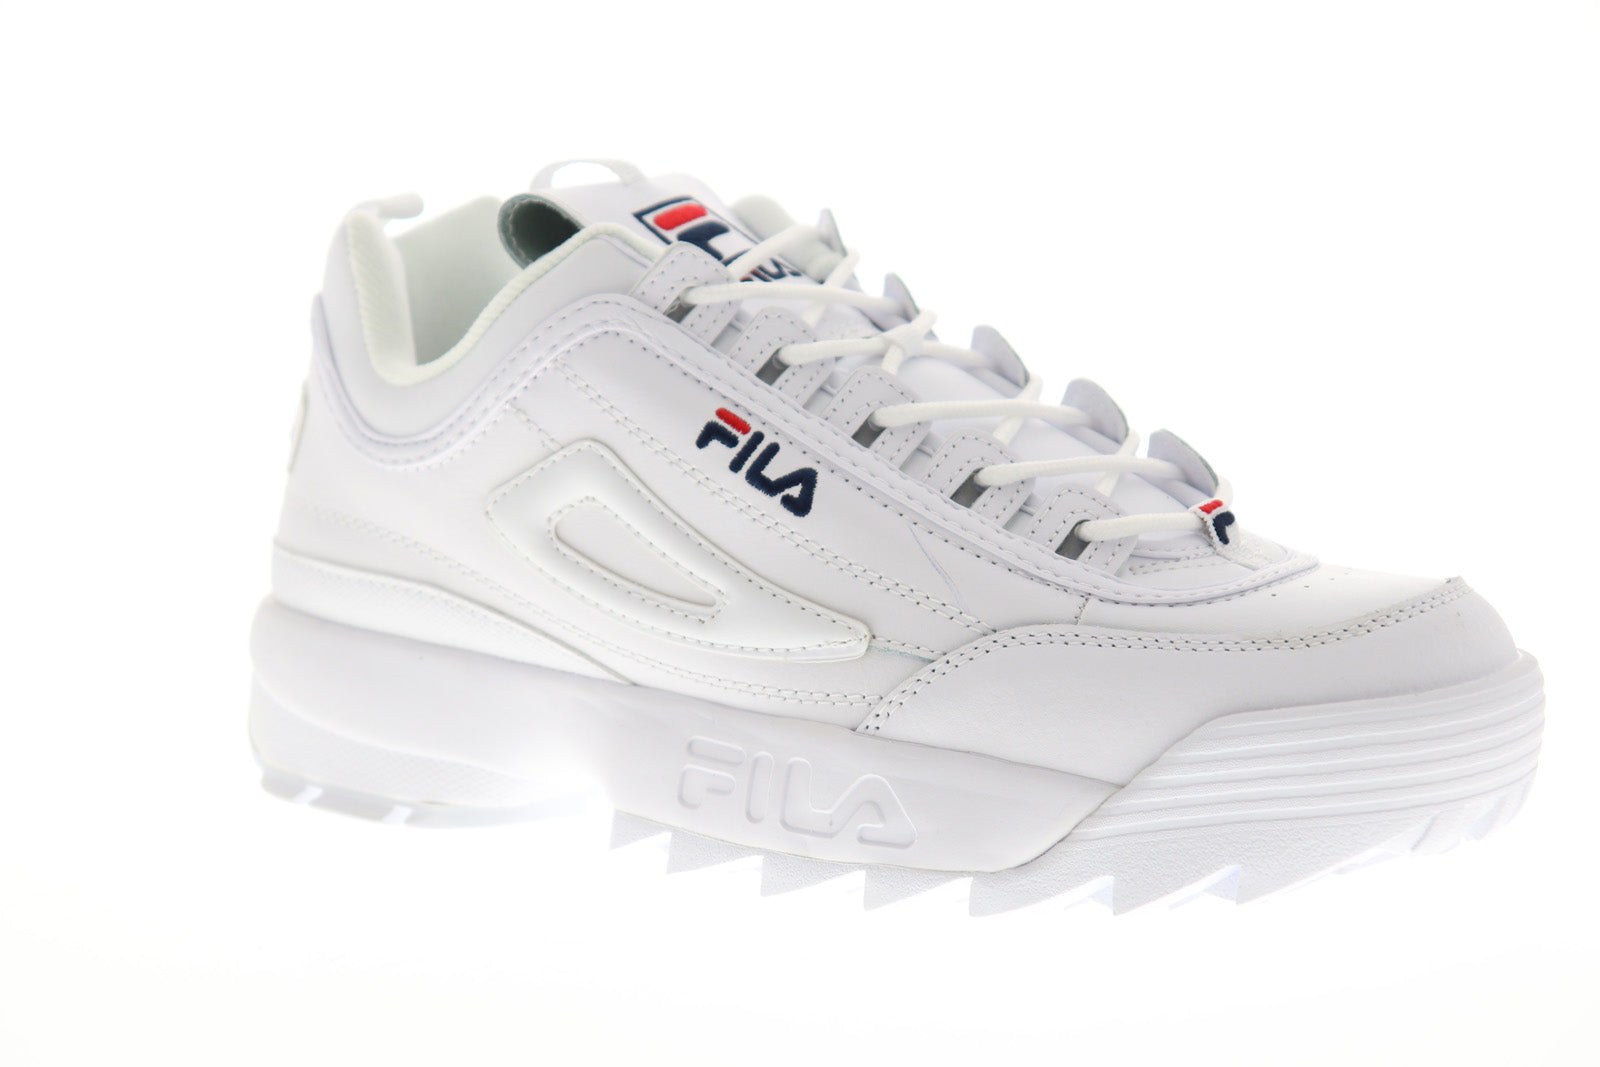 Fila Disruptor II Premium Mens White Leather Casual Low Top Sneakers Shoes